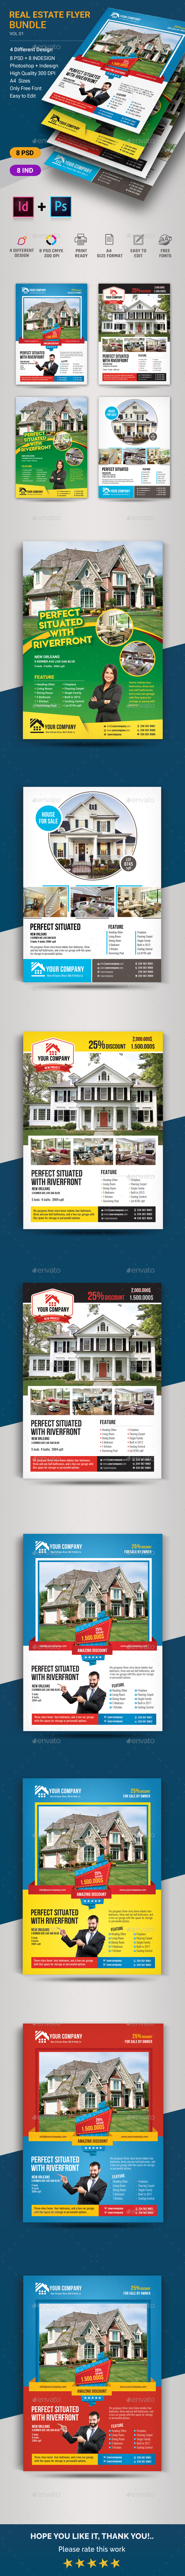 Real Estate Flyer Bundle - Corporate Business Cards